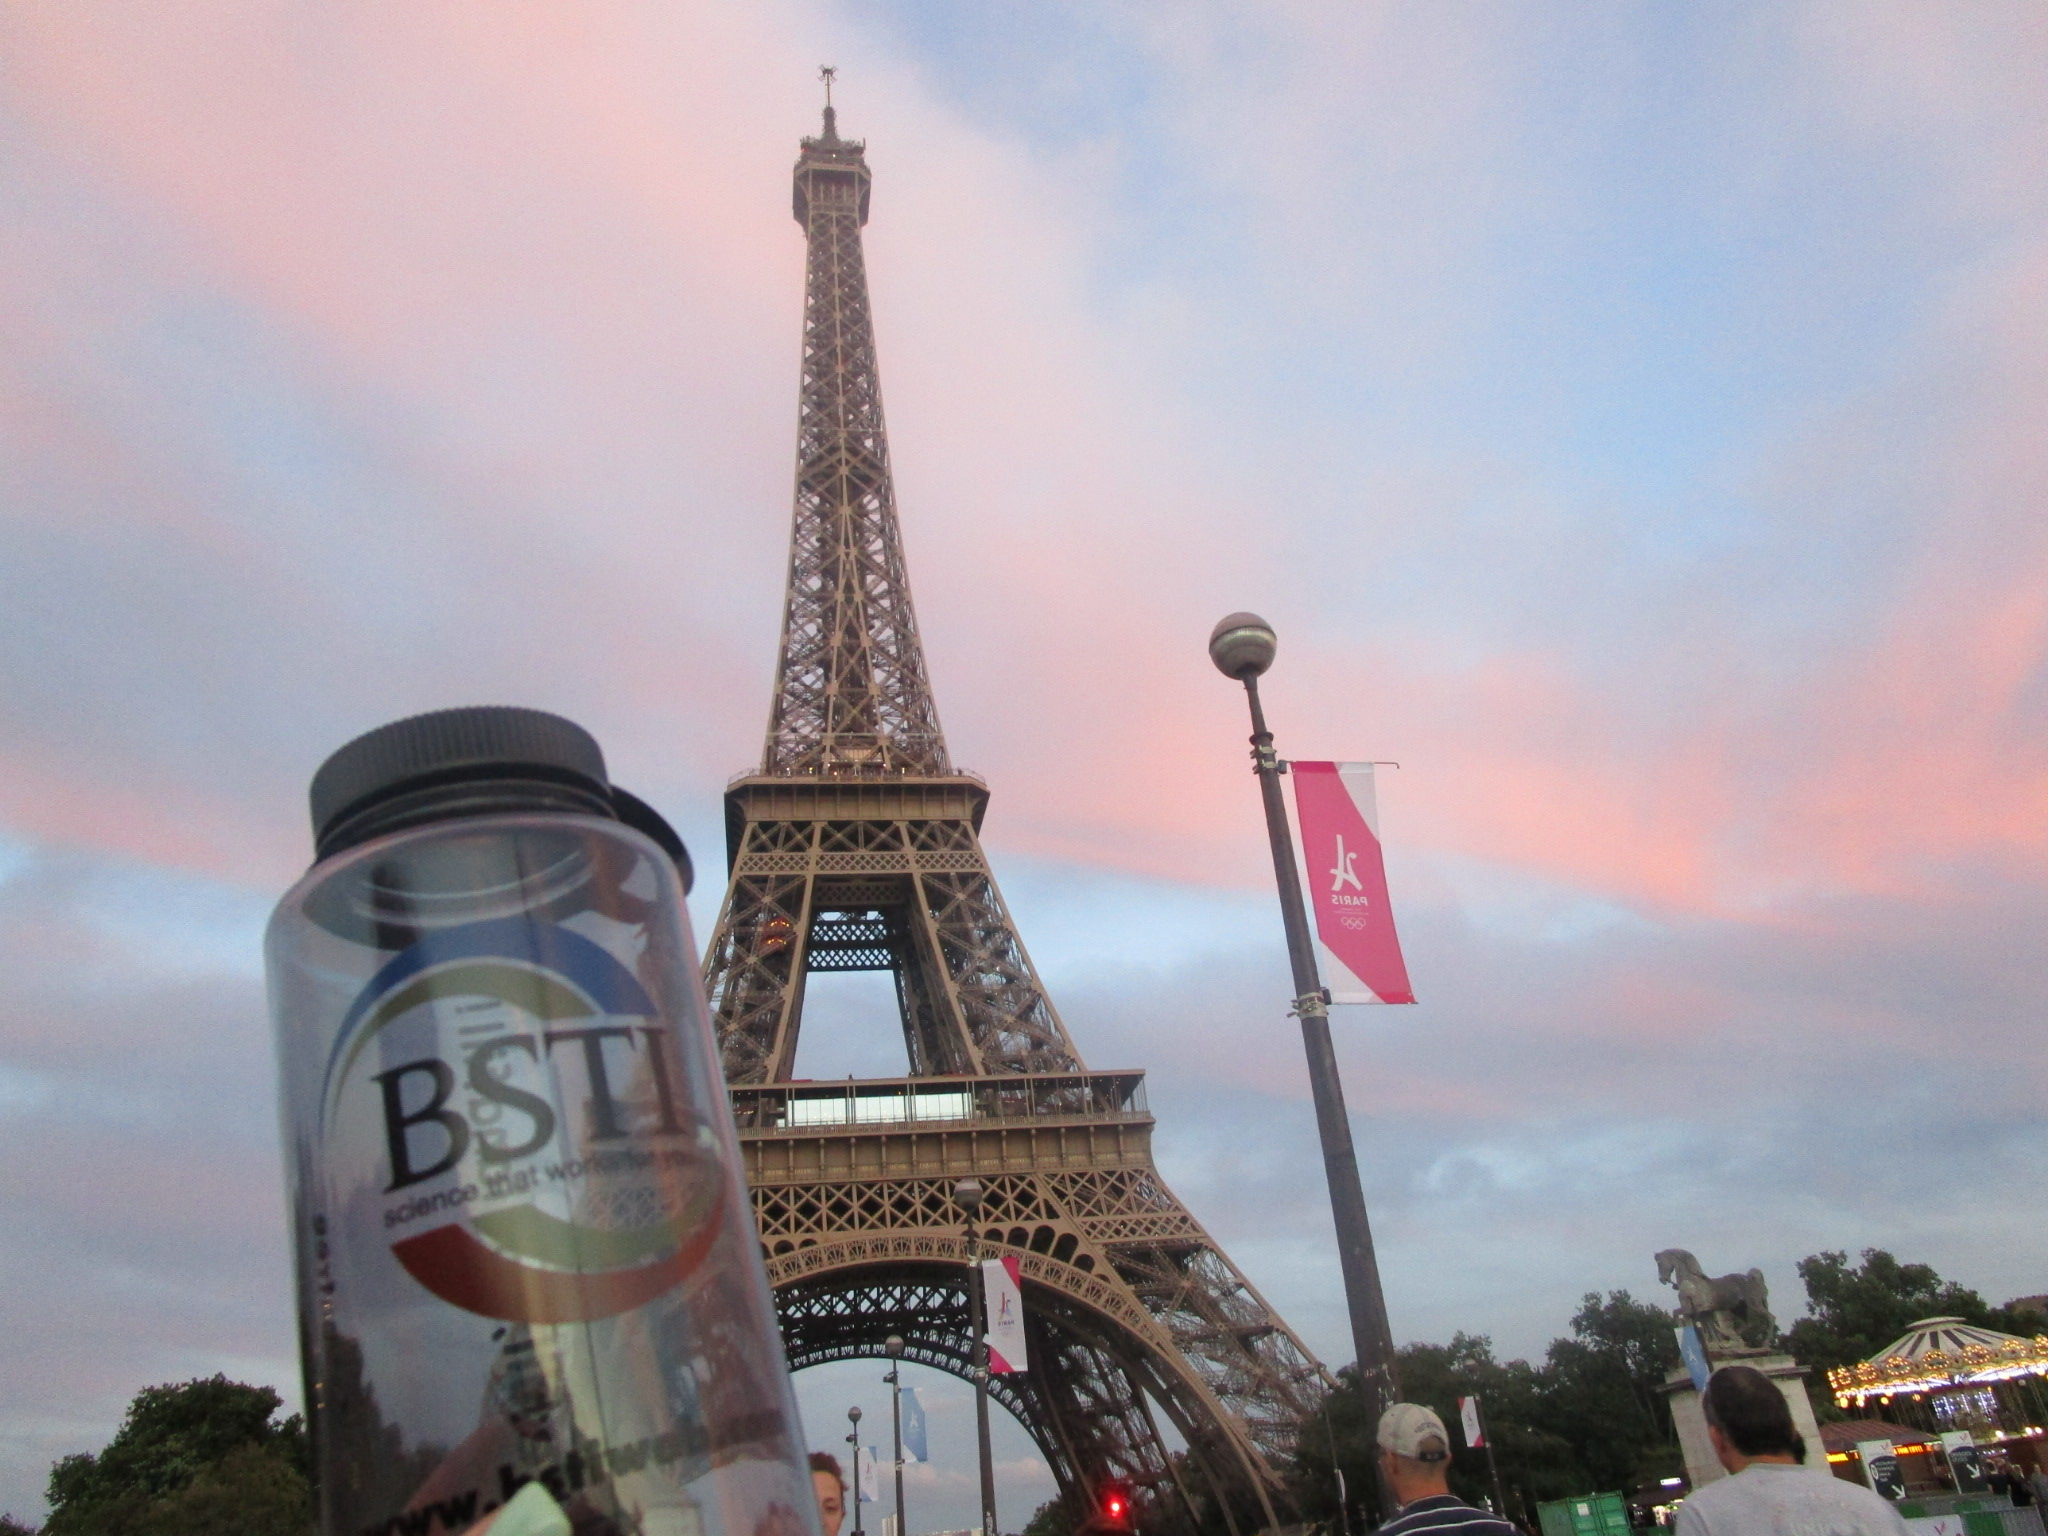 Taking in a beautiful sunset at the Eiffel Tower